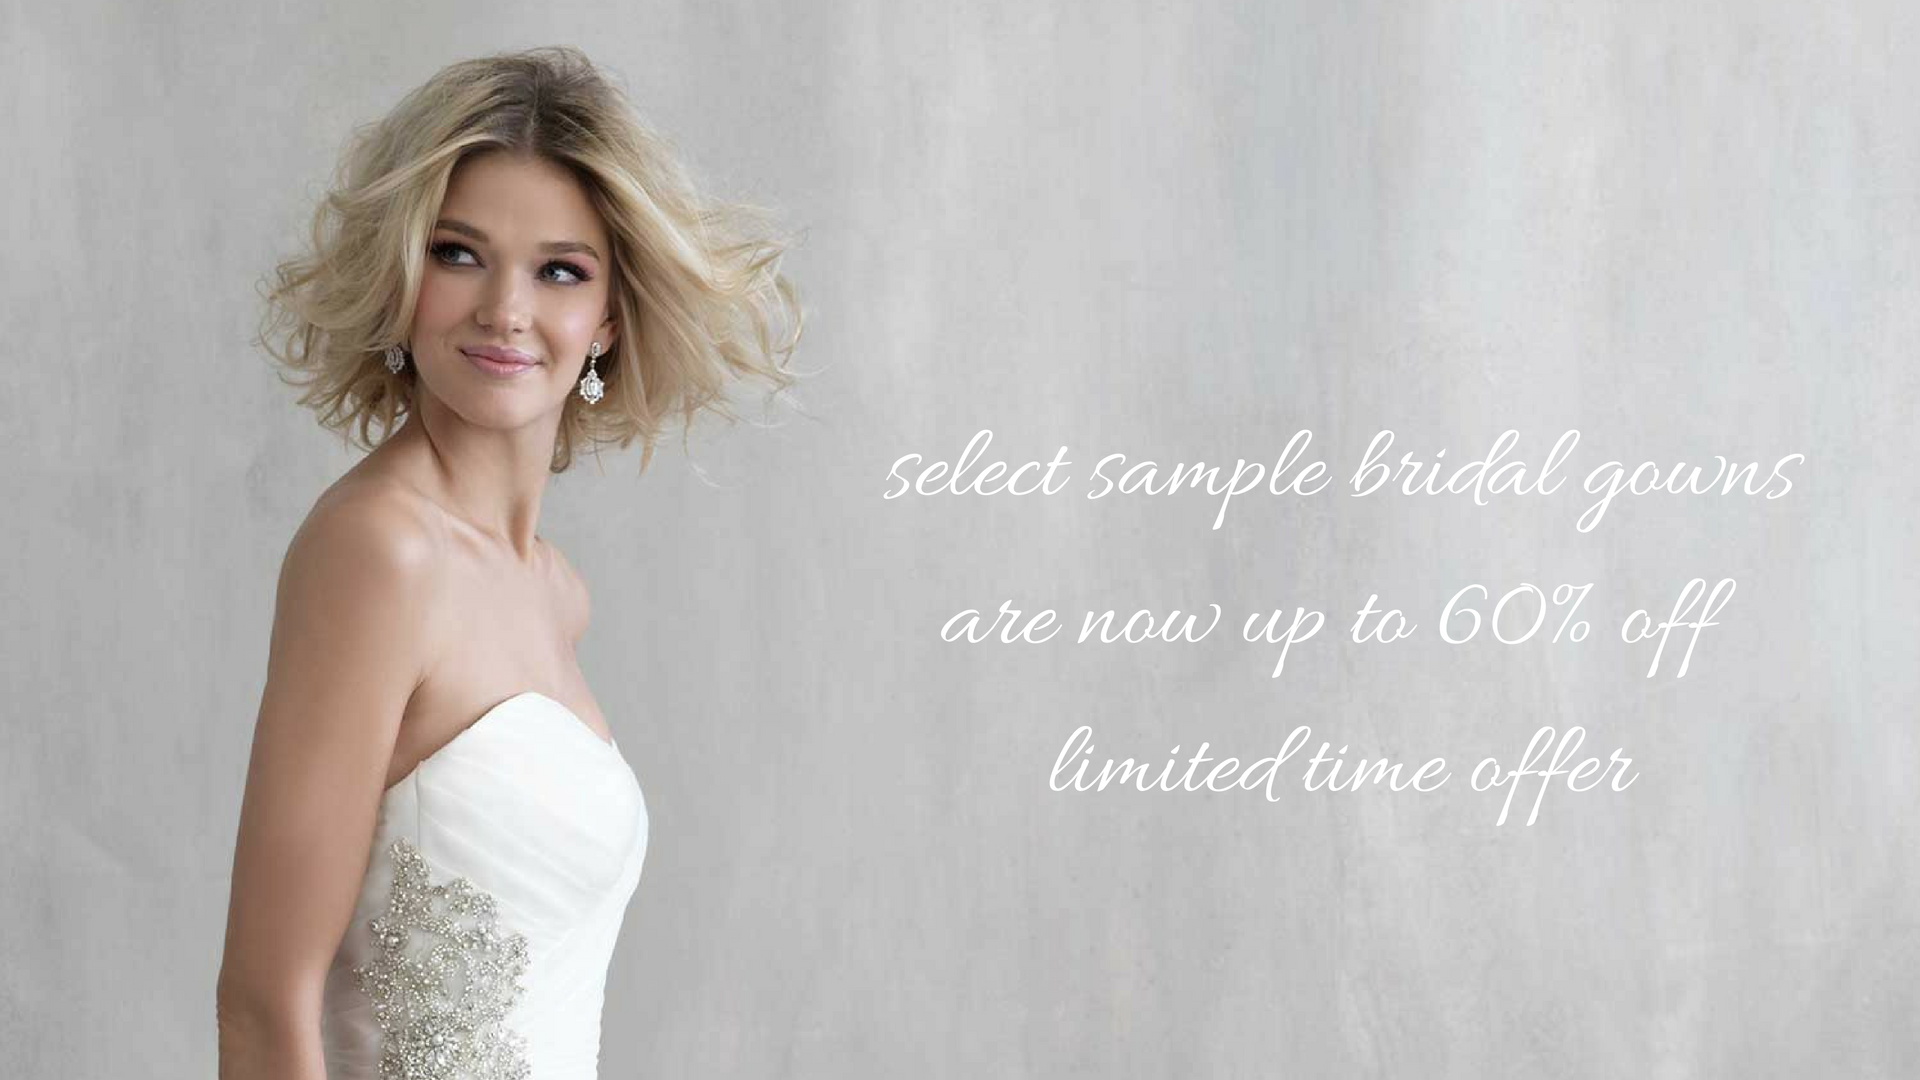 all-discontinued-bridal-gowns-are-now-60-off-5